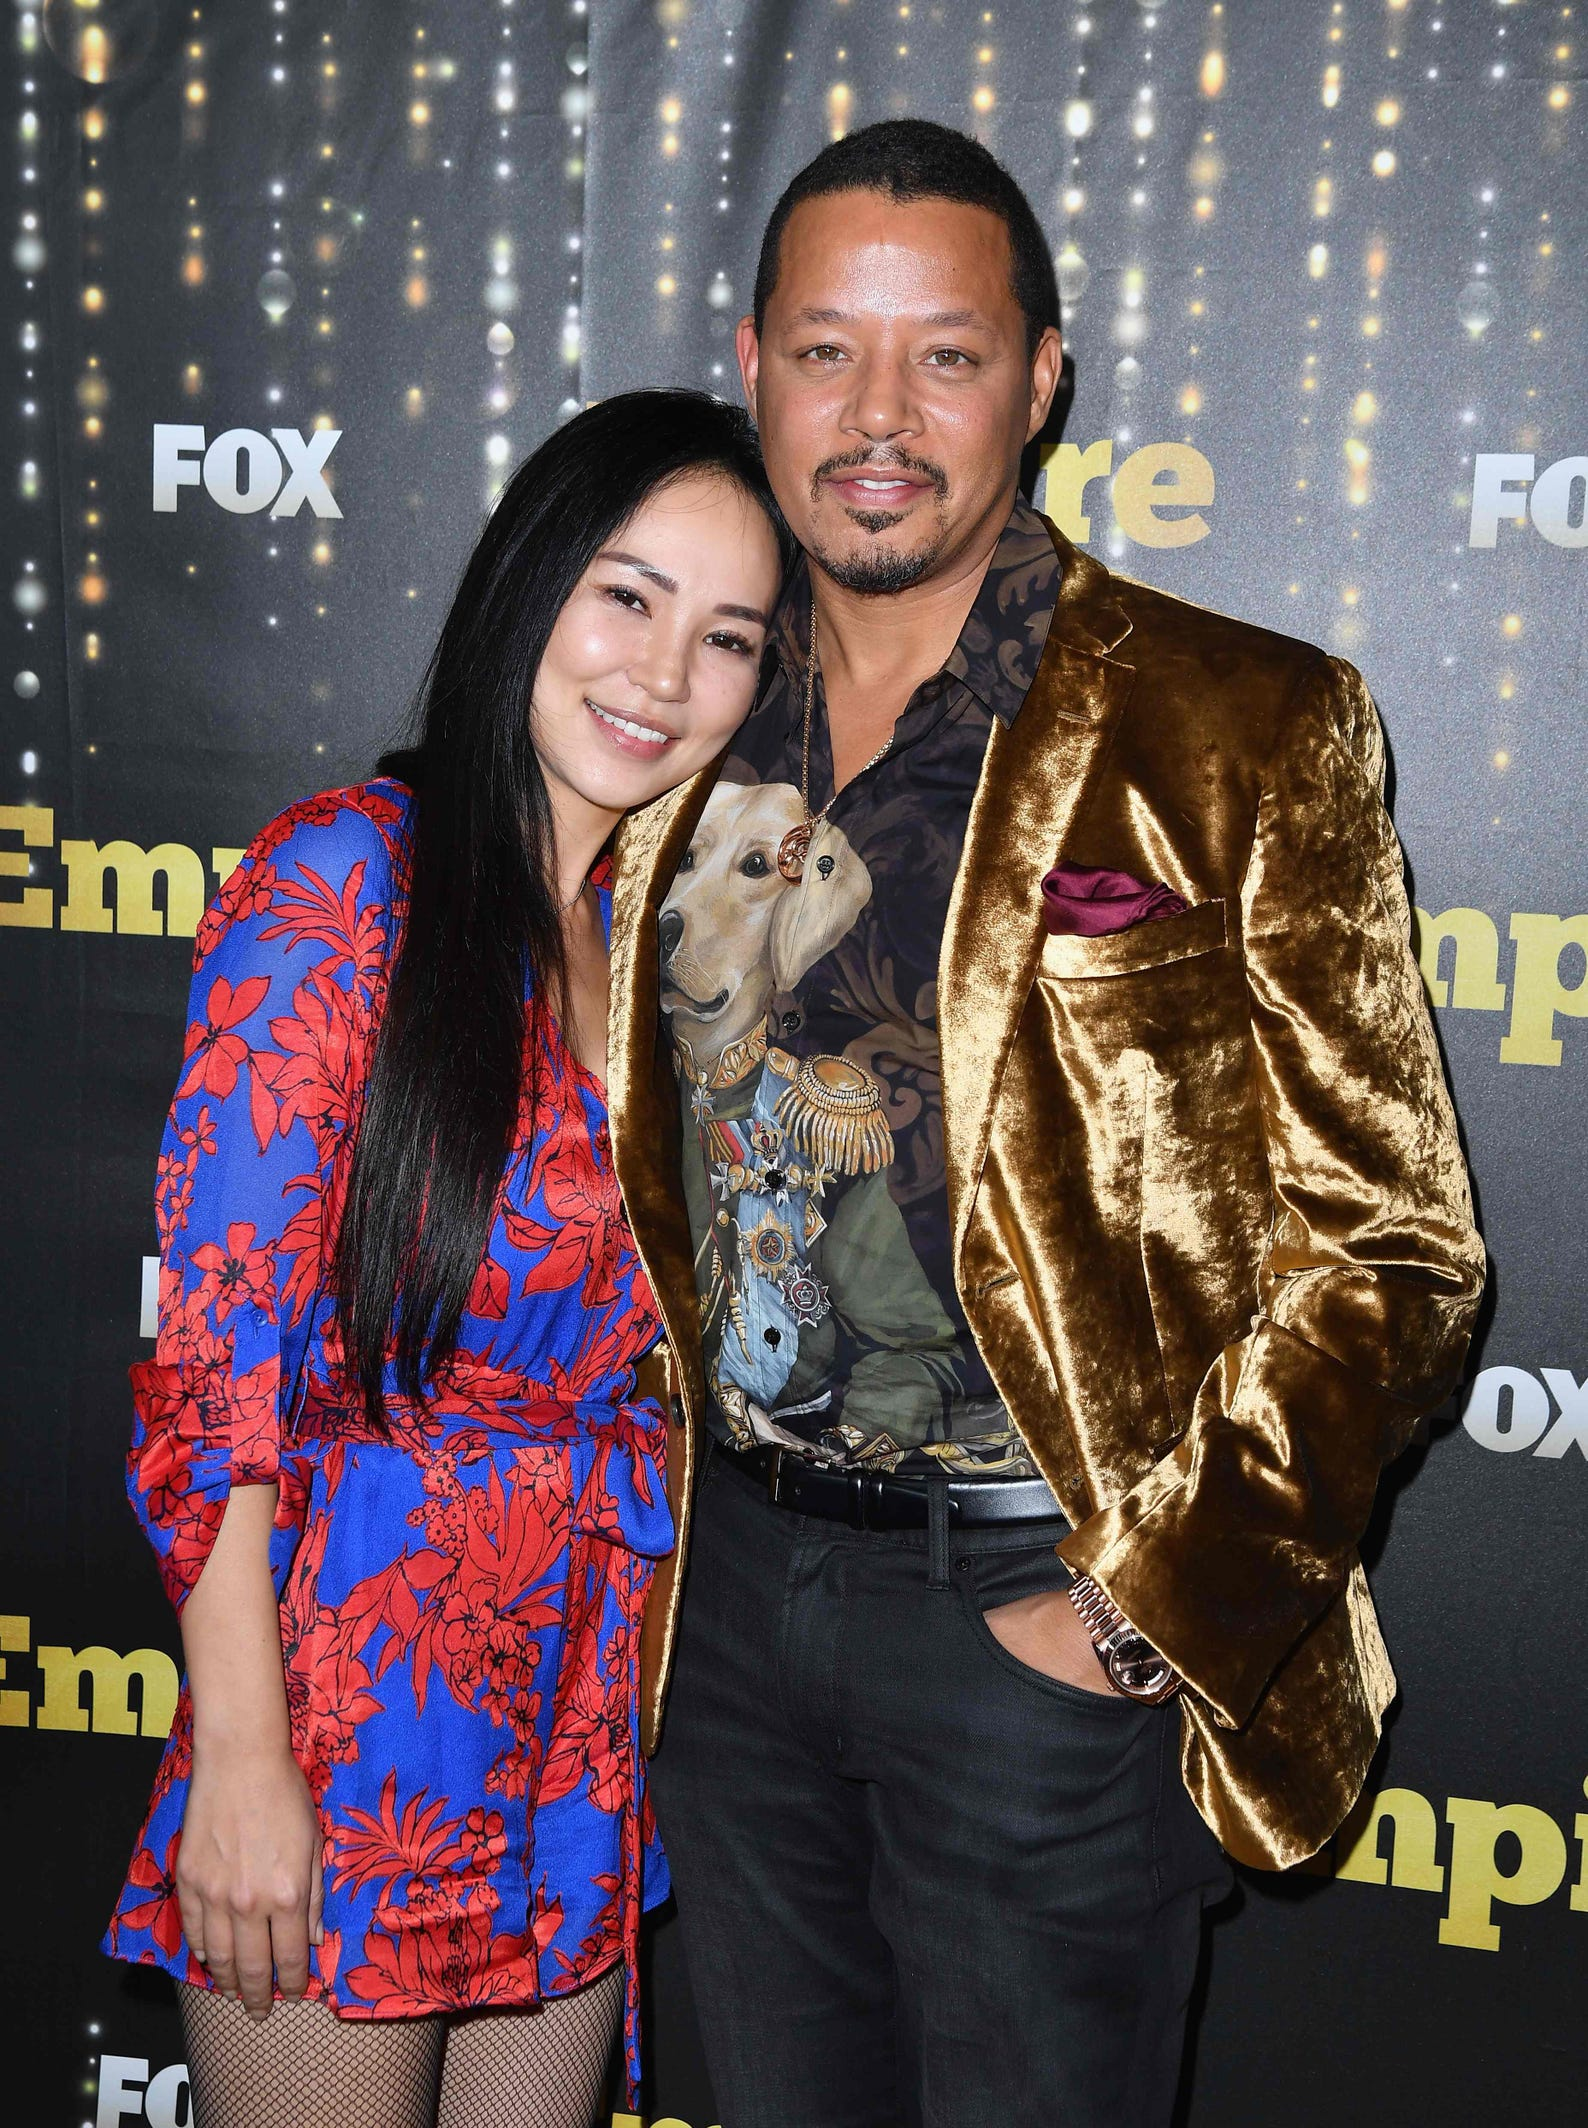 Terrence Howard proposed to ex-wife Mira Pak!